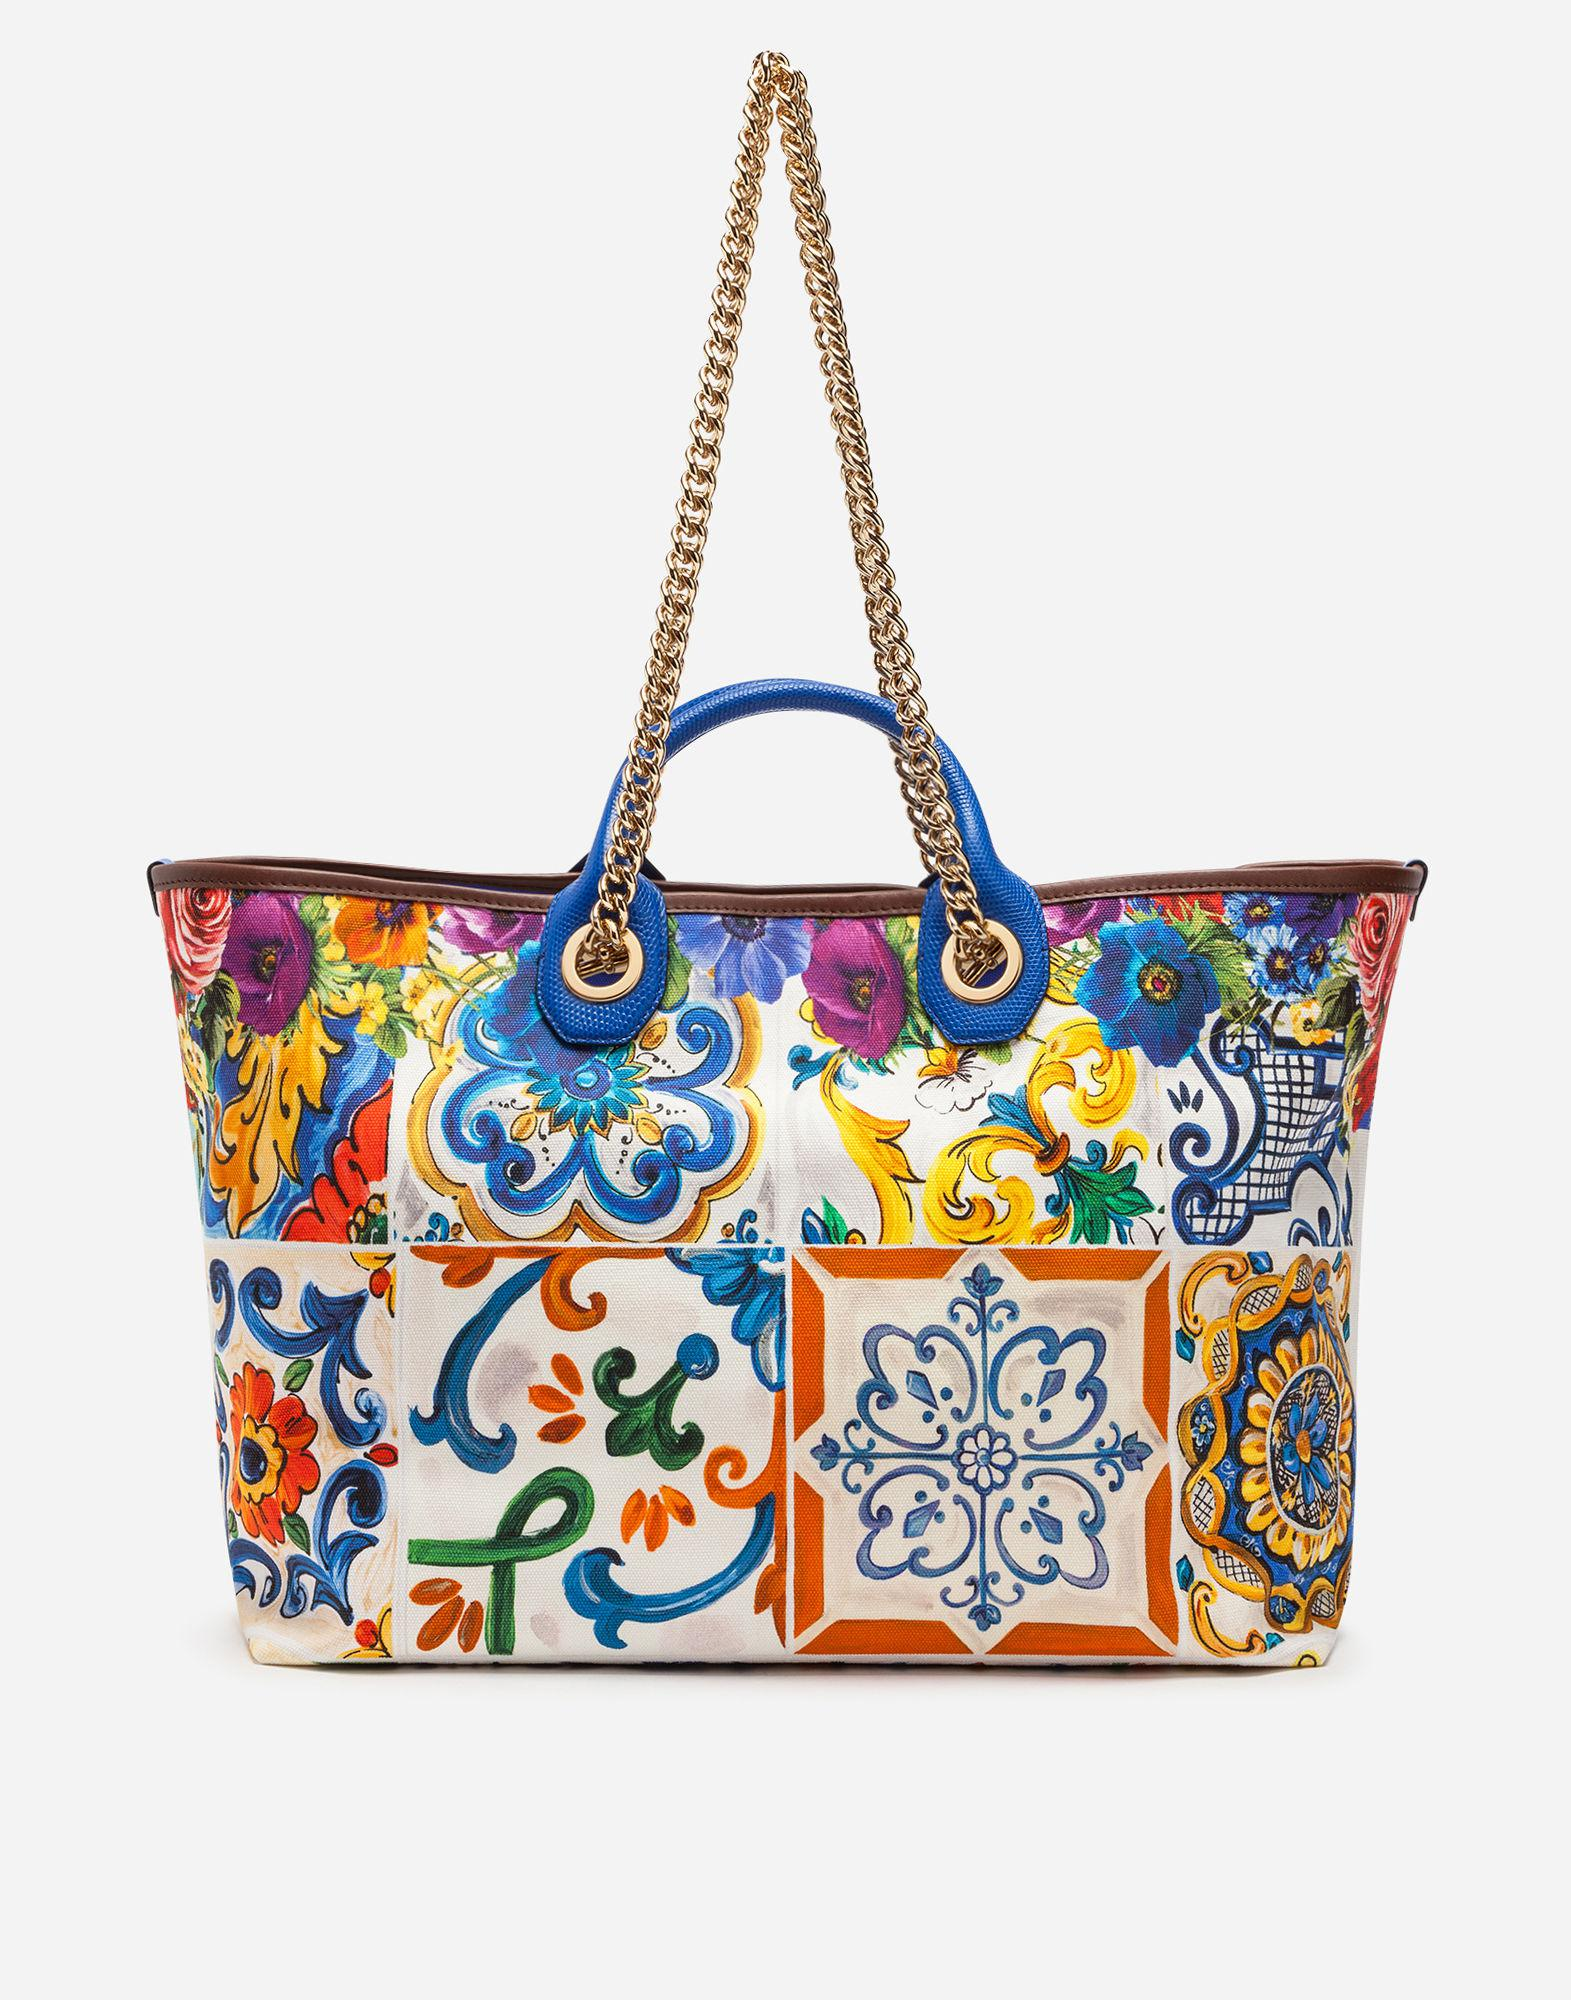 Lyst - Dolce   Gabbana Medium Capri Shopping Bag In Printed Canvas ... 5386817703c44